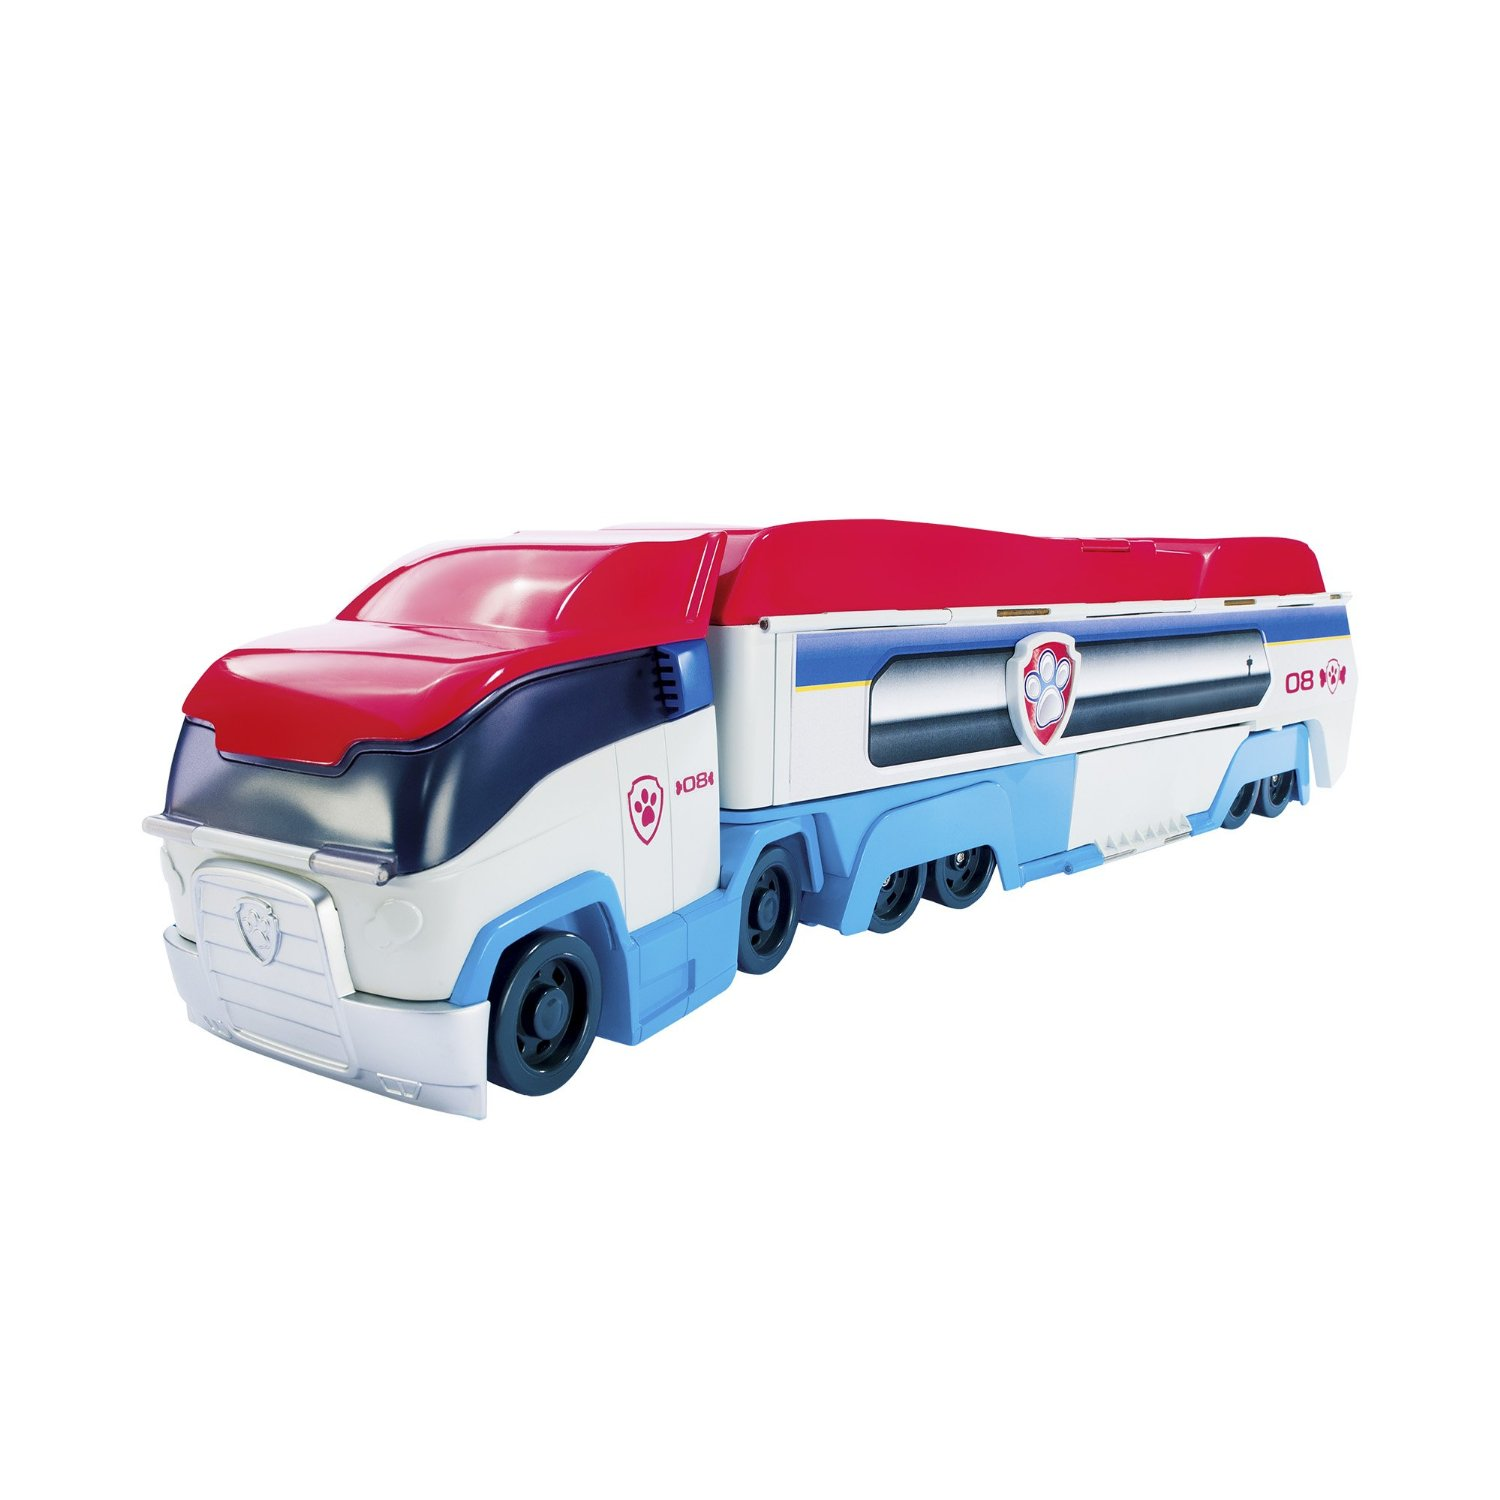 paw patrol camion pat patrouilleur de la pat patrouille jouets pas cher amazon ventes pas. Black Bedroom Furniture Sets. Home Design Ideas